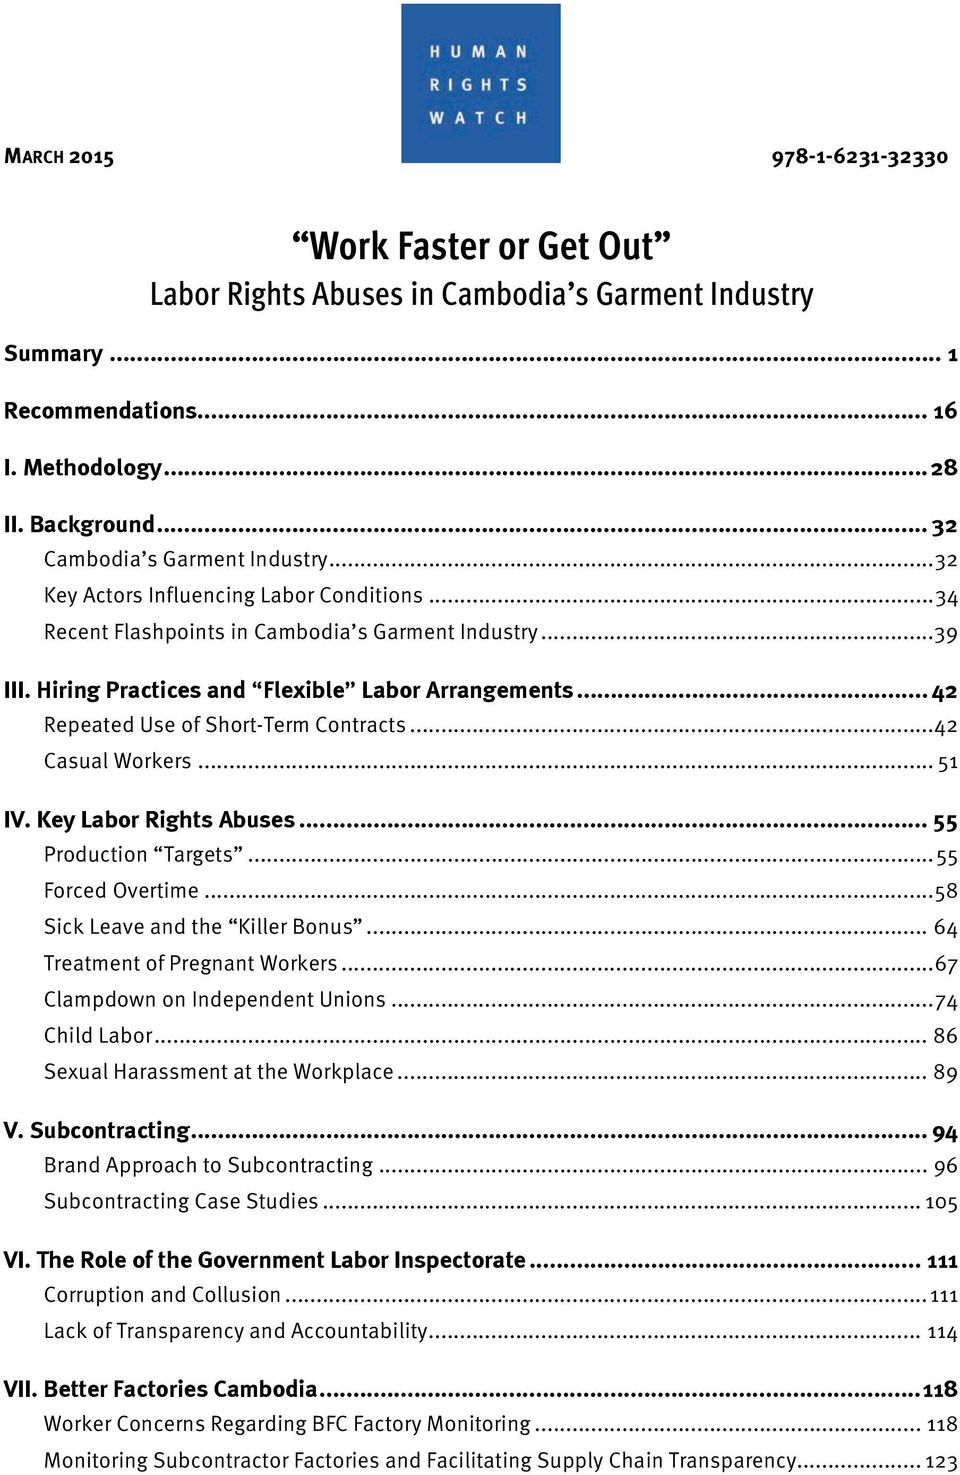 .. 42 Repeated Use of Short-Term Contracts... 42 Casual Workers... 51 IV. Key Labor Rights Abuses... 55 Production Targets... 55 Forced Overtime... 58 Sick Leave and the Killer Bonus.